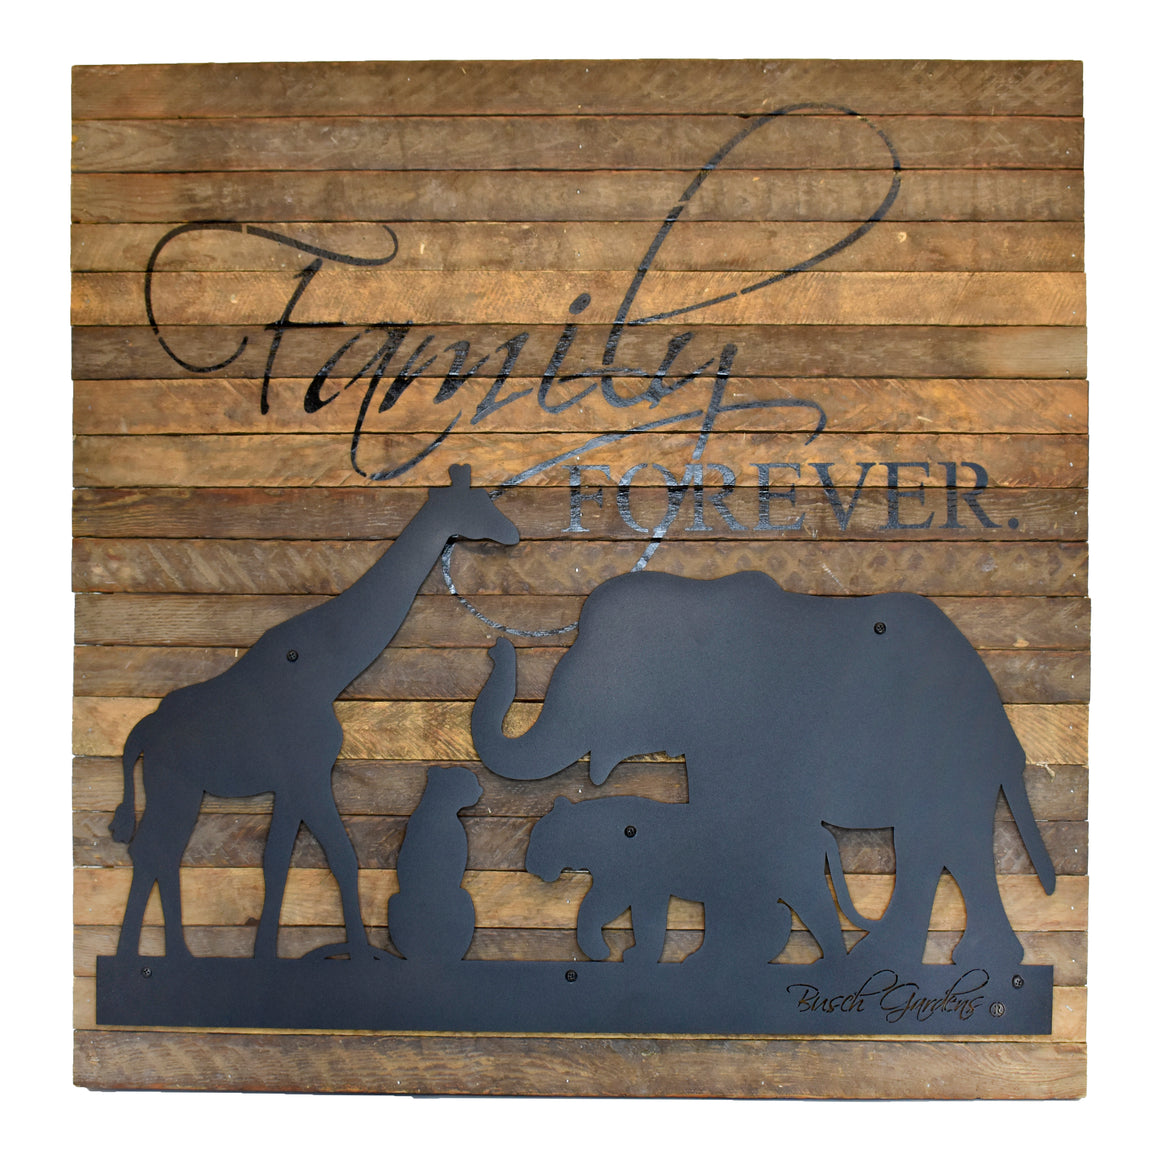 Busch Gardens Family is Forever Metal Cutout Wall Art - 28""